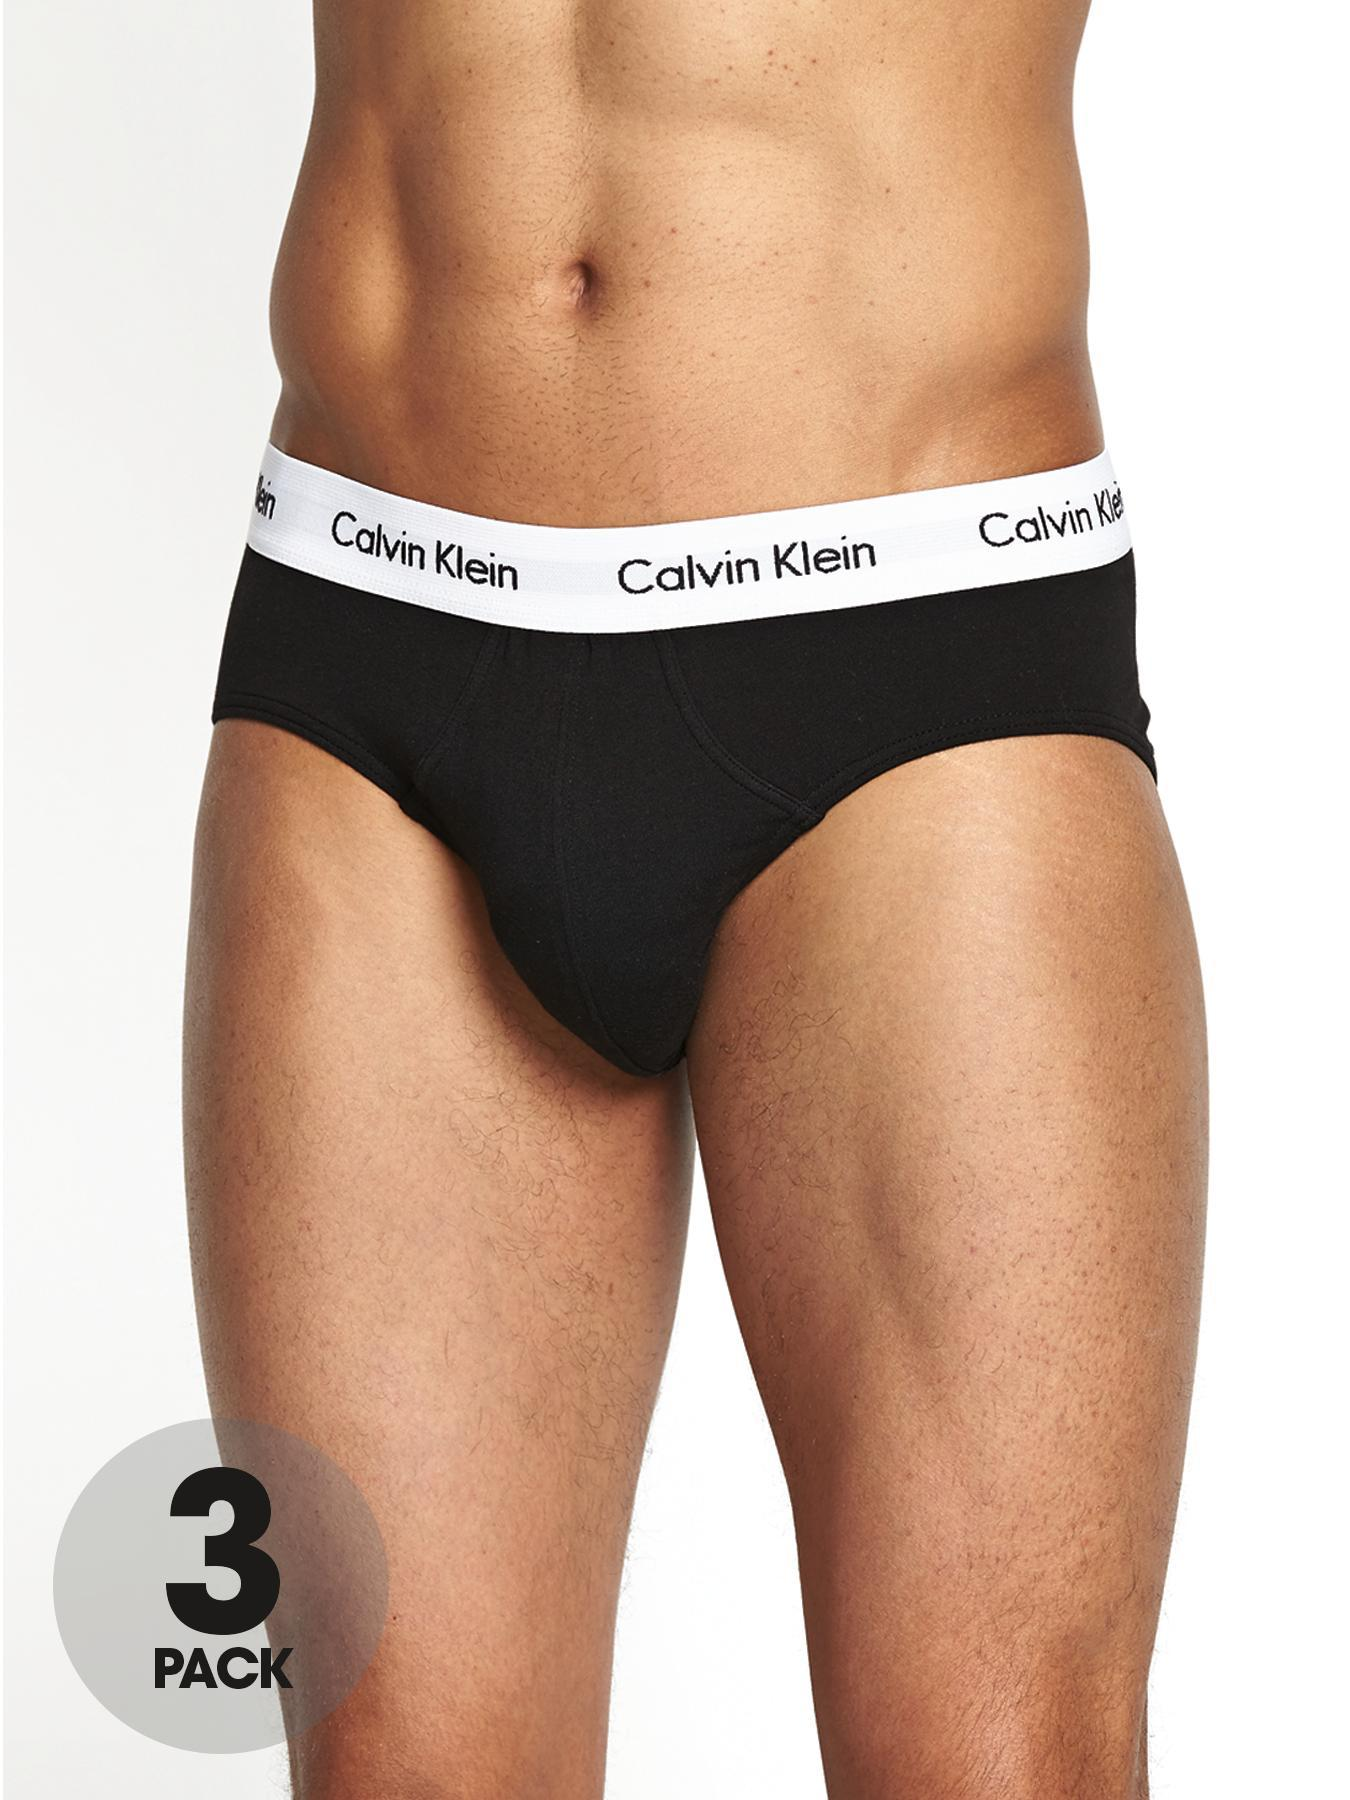 Calvin Klein Mens Briefs (3 Pack) - Black, Black